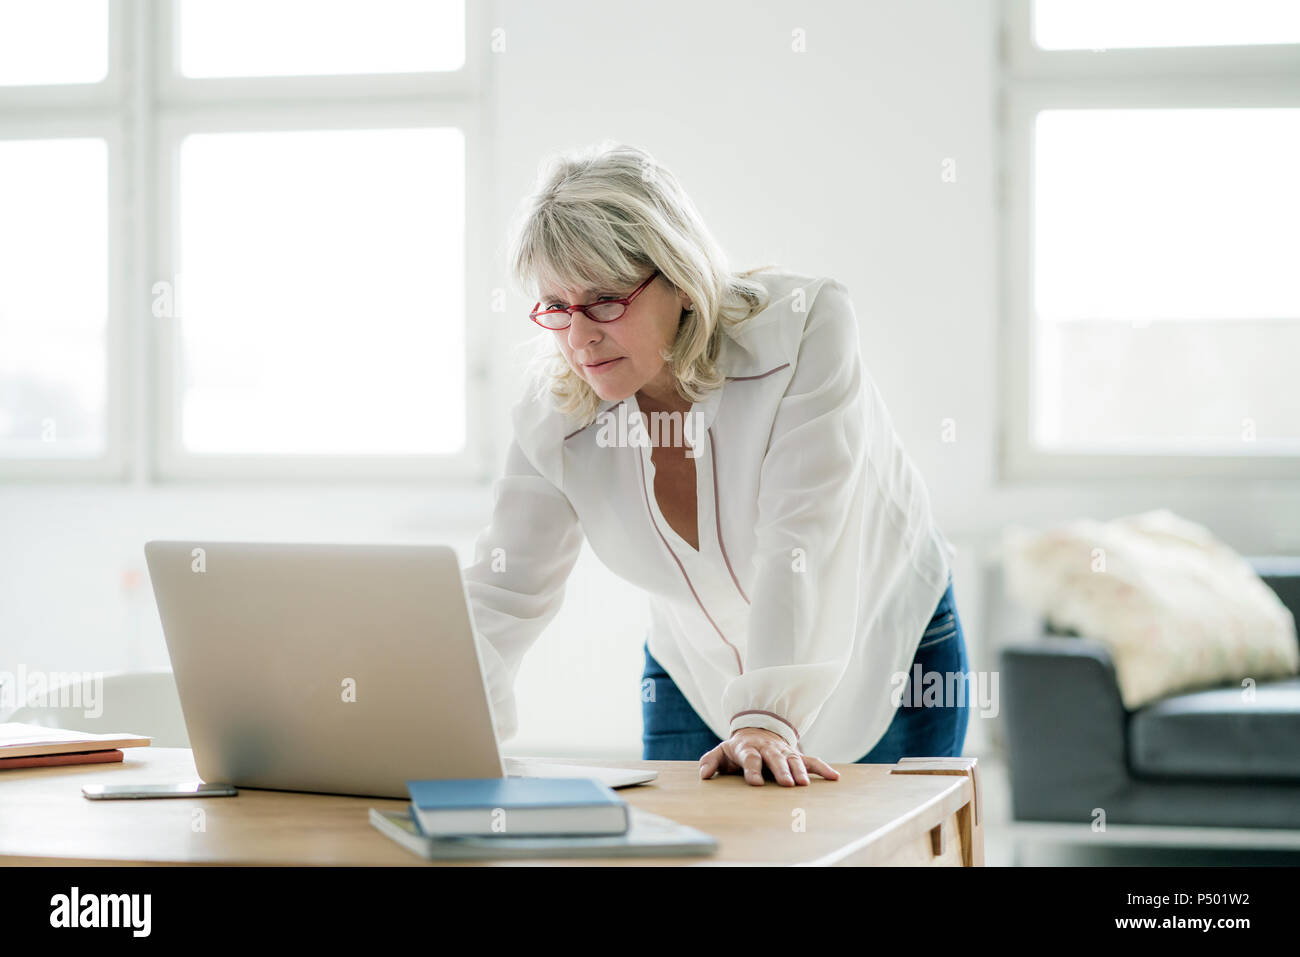 Mature businesswoman working on laptop at desk Stock Photo